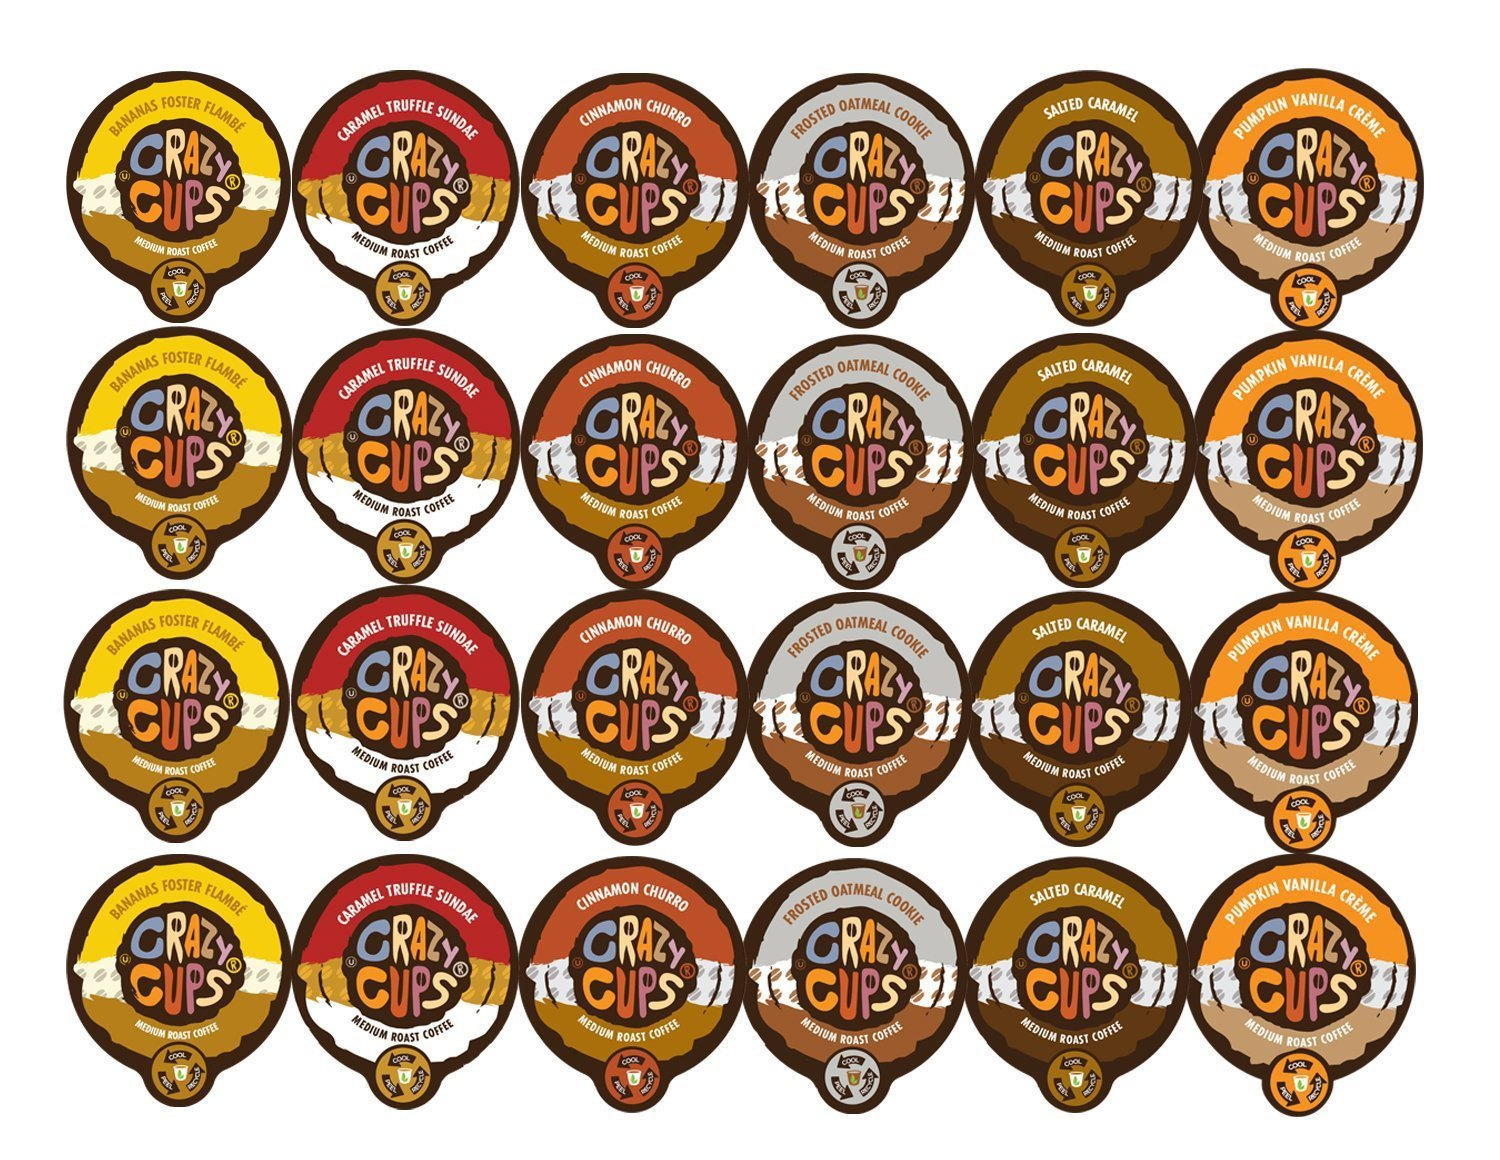 Crazy Cups Coffee Flavor Lovers Single Serve Cups Variety Pack Sampler for the K Cup Brewer, 24 count